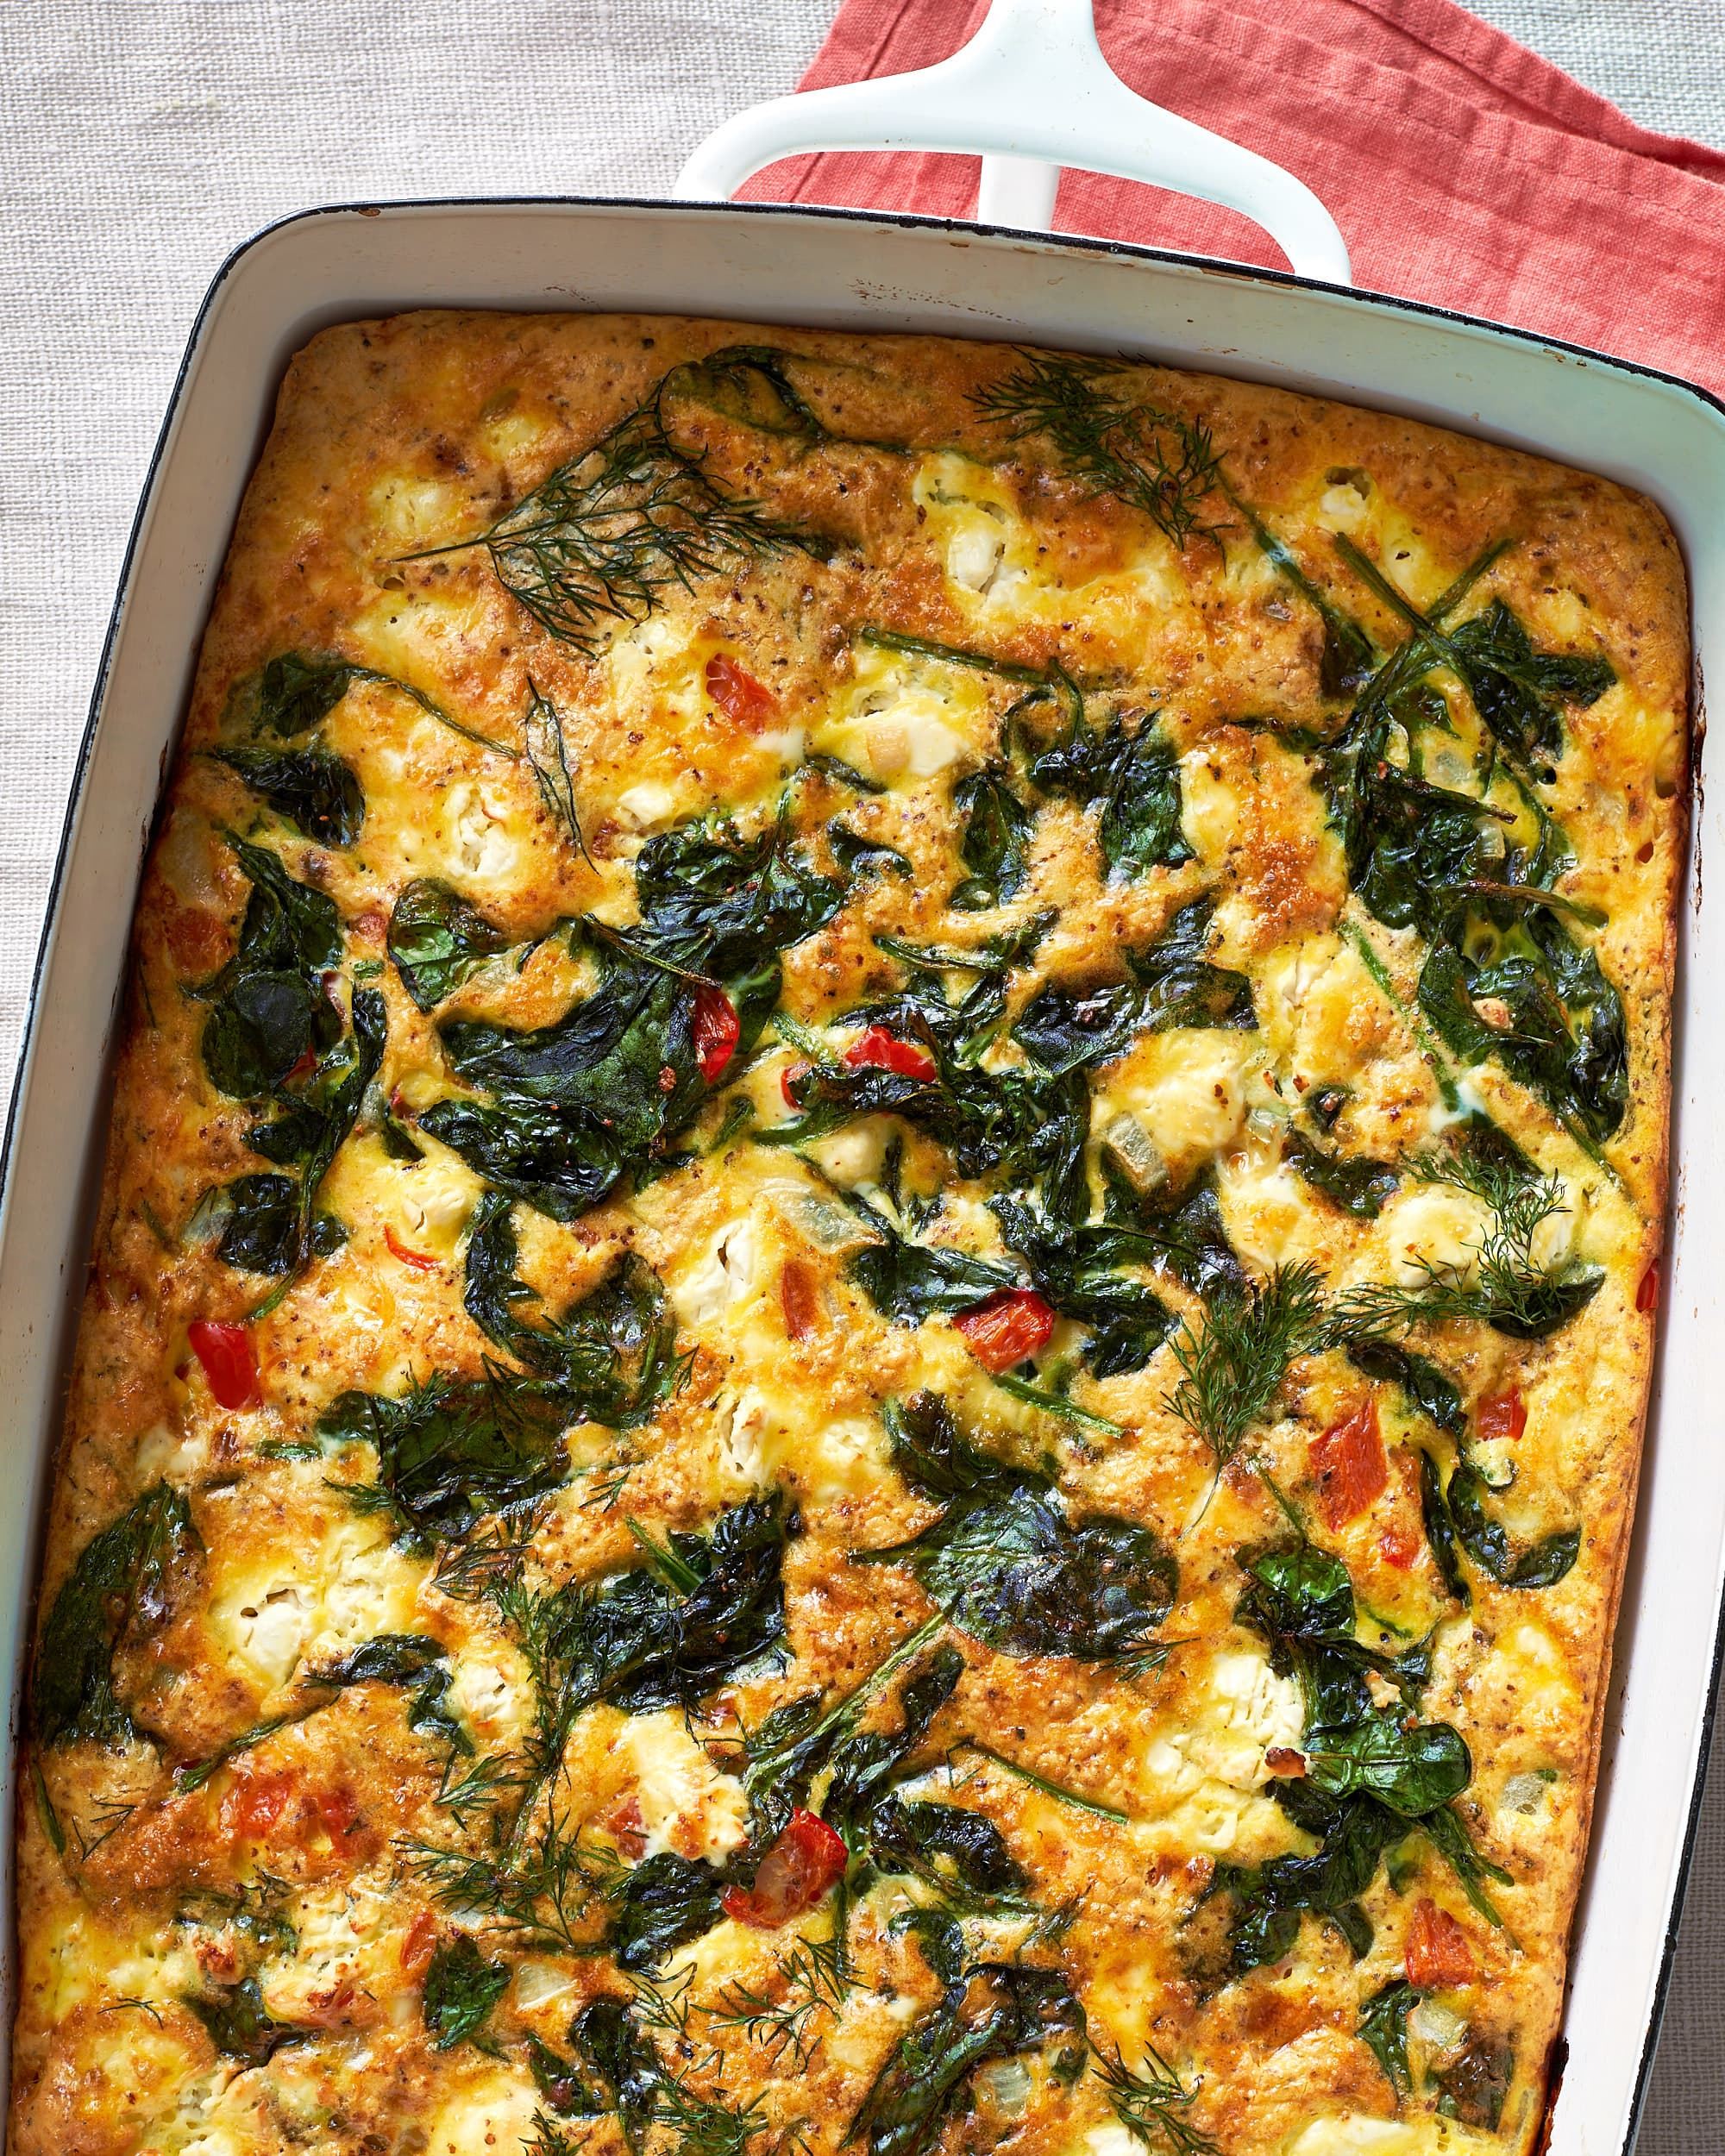 5 Low-Carb Casseroles That Are Packed with Veggies